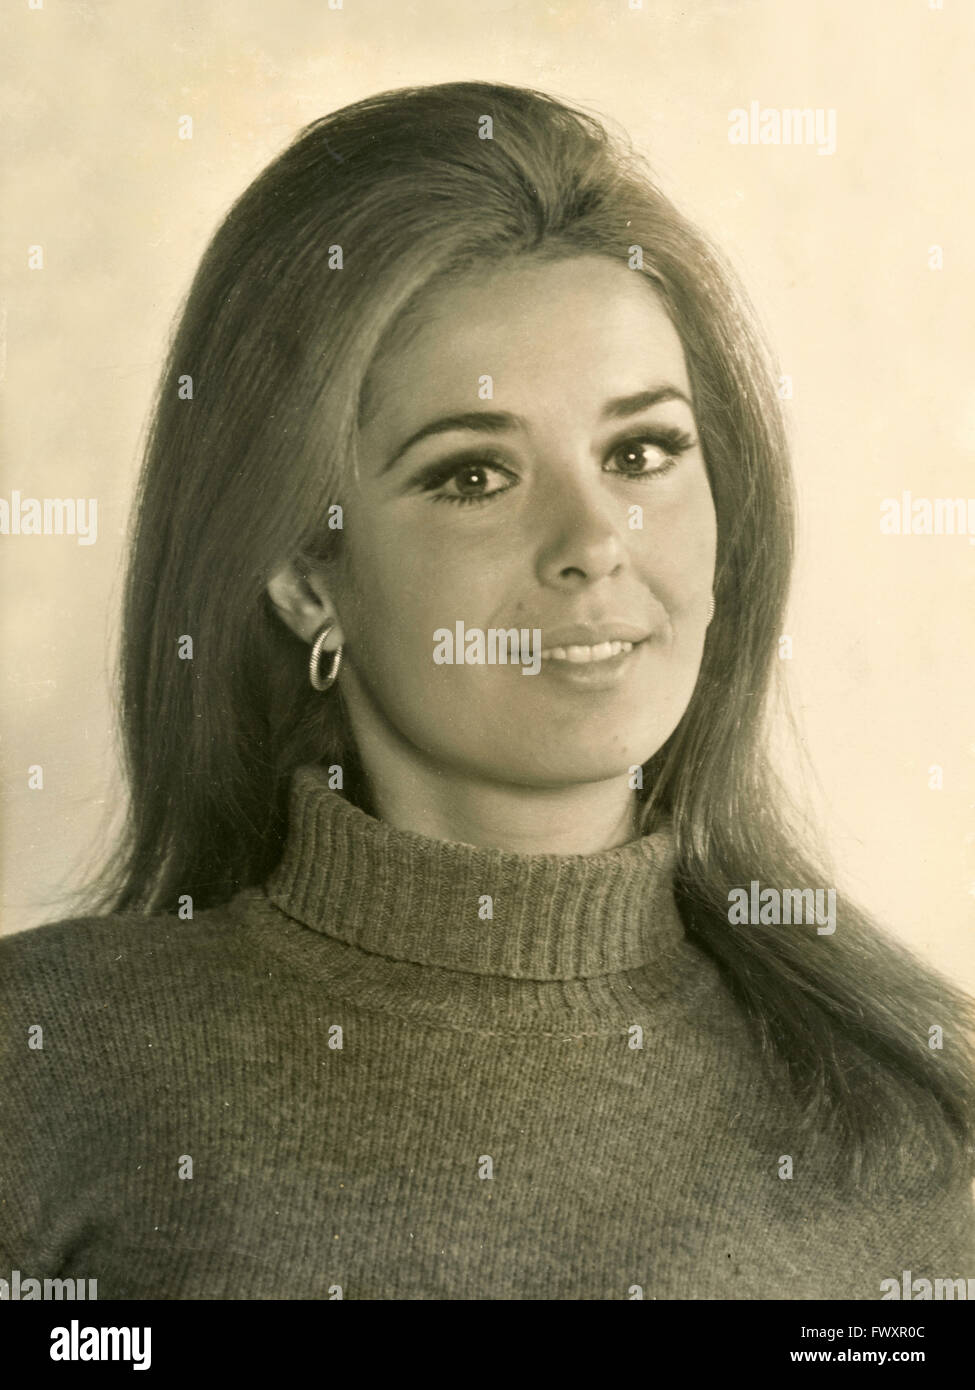 A young model 70s, Italy - Stock Image